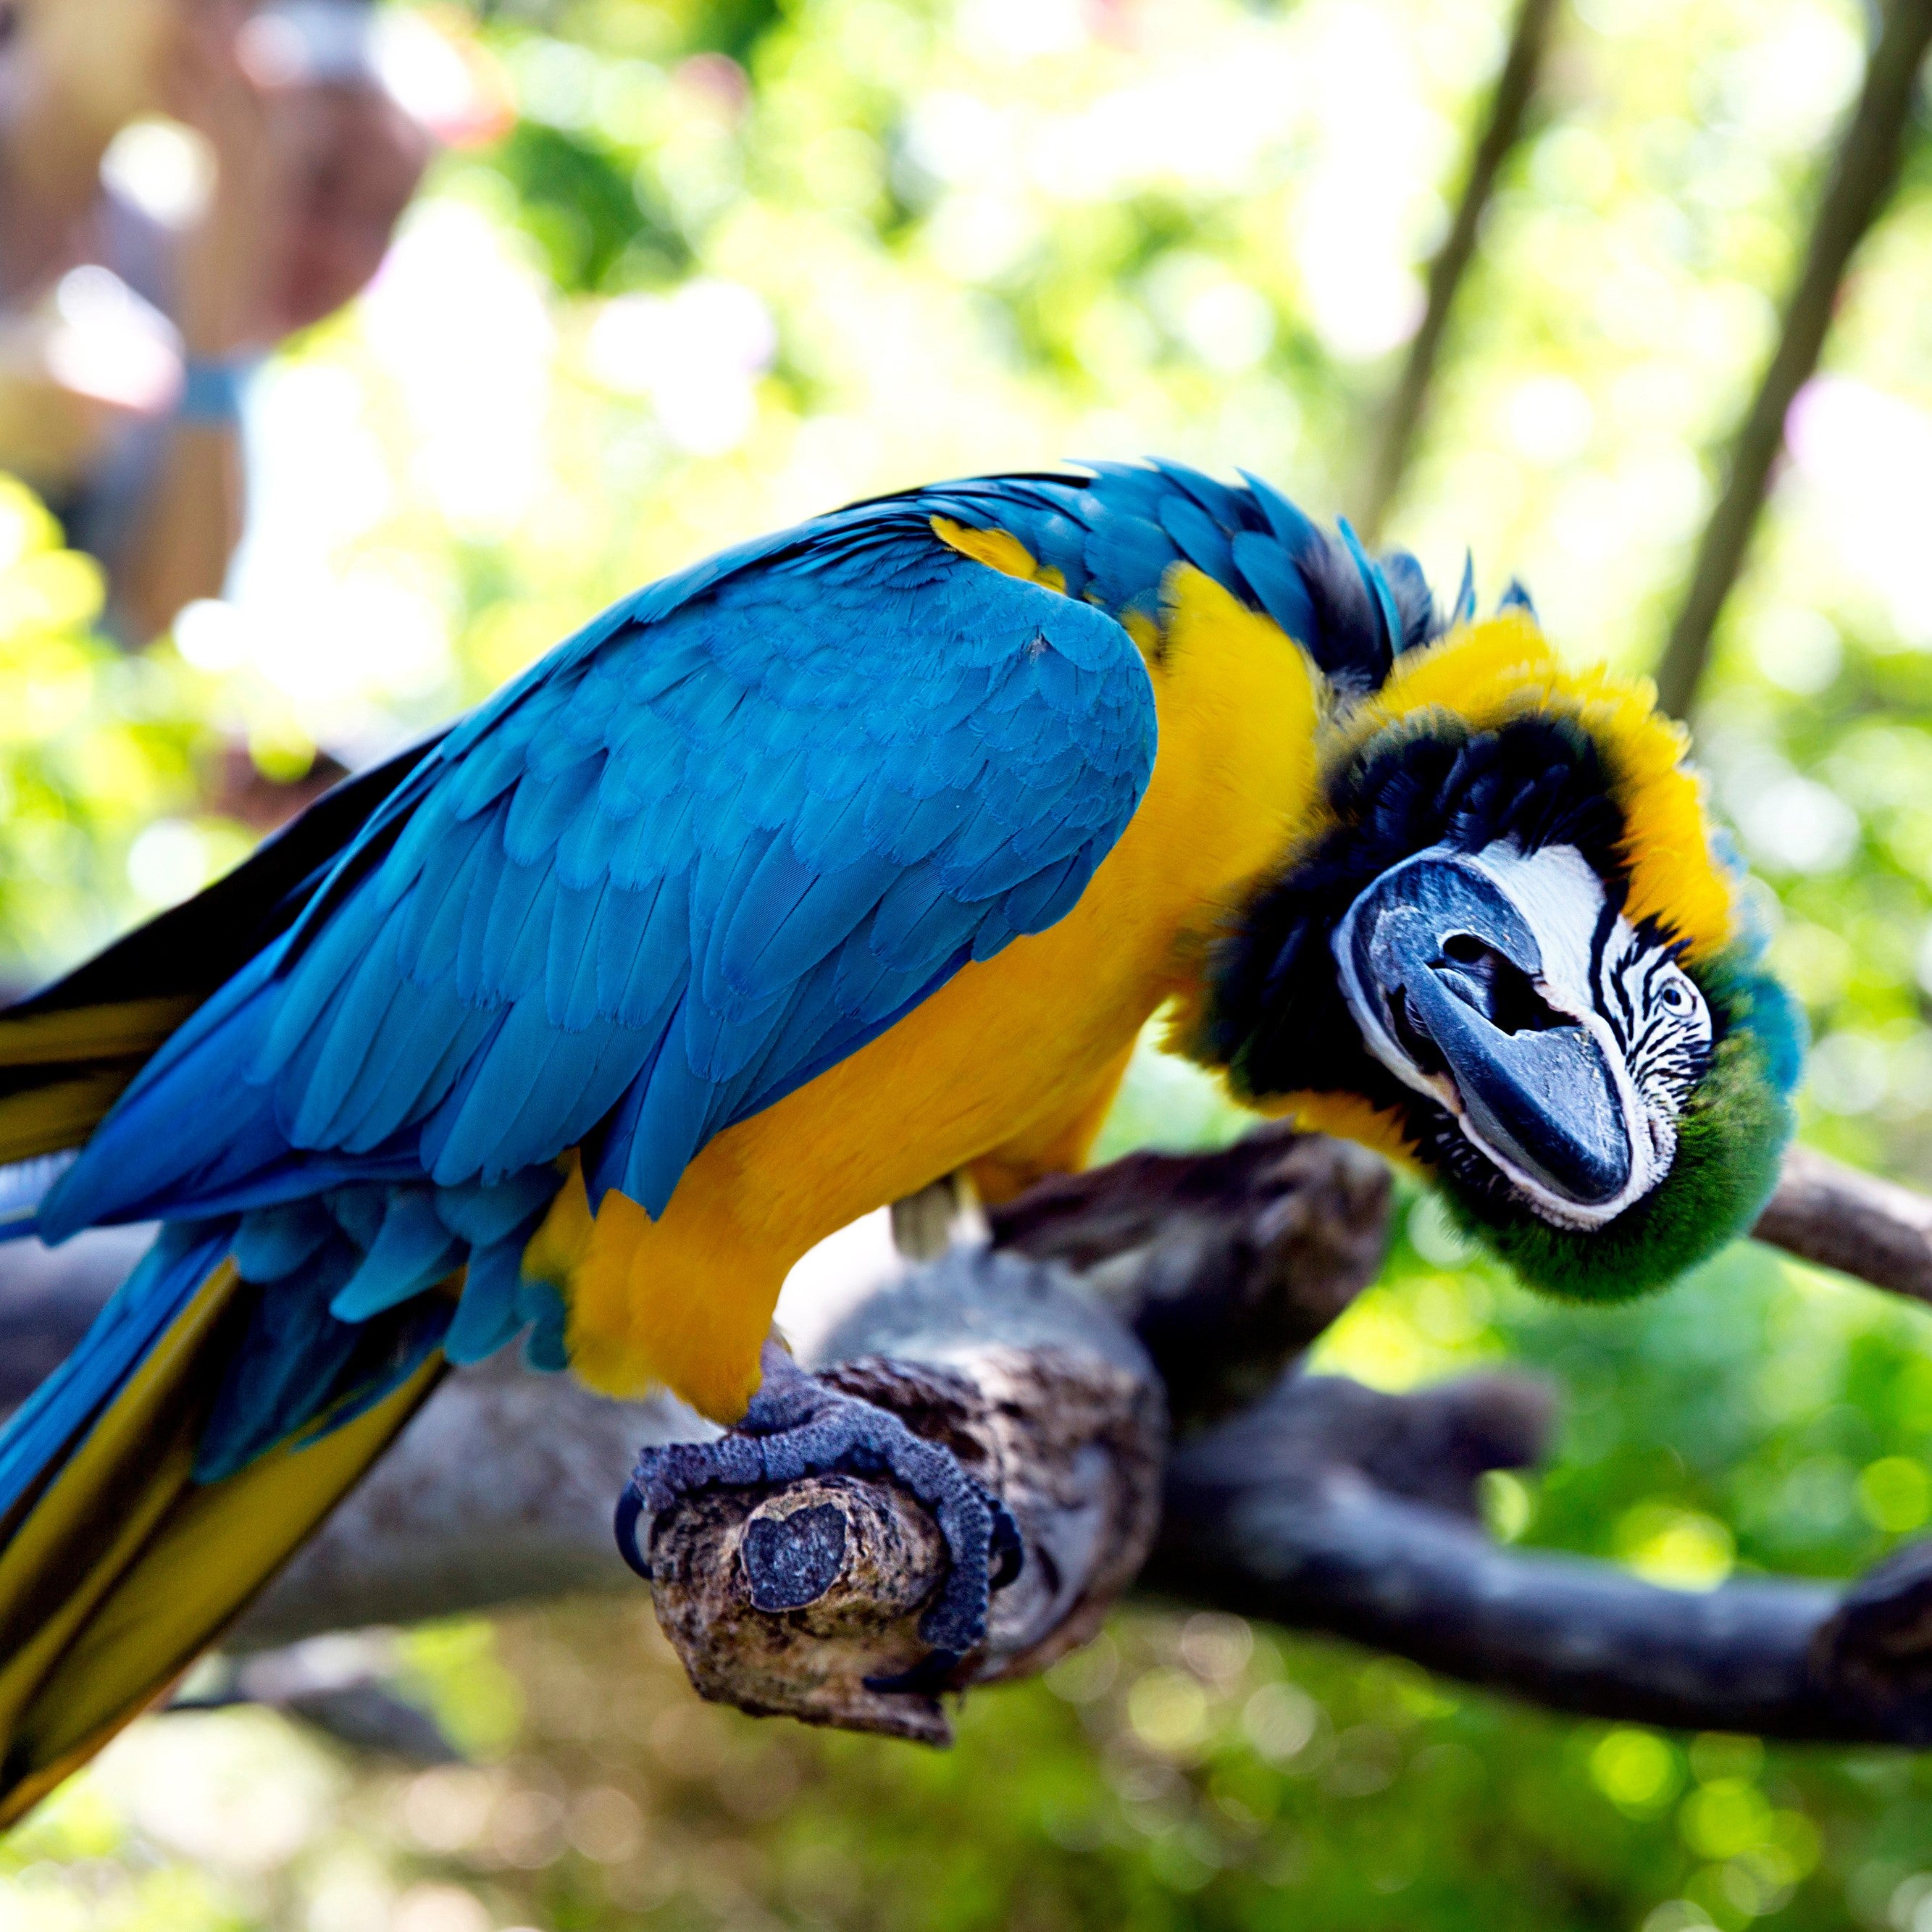 inquisitive looking parrot